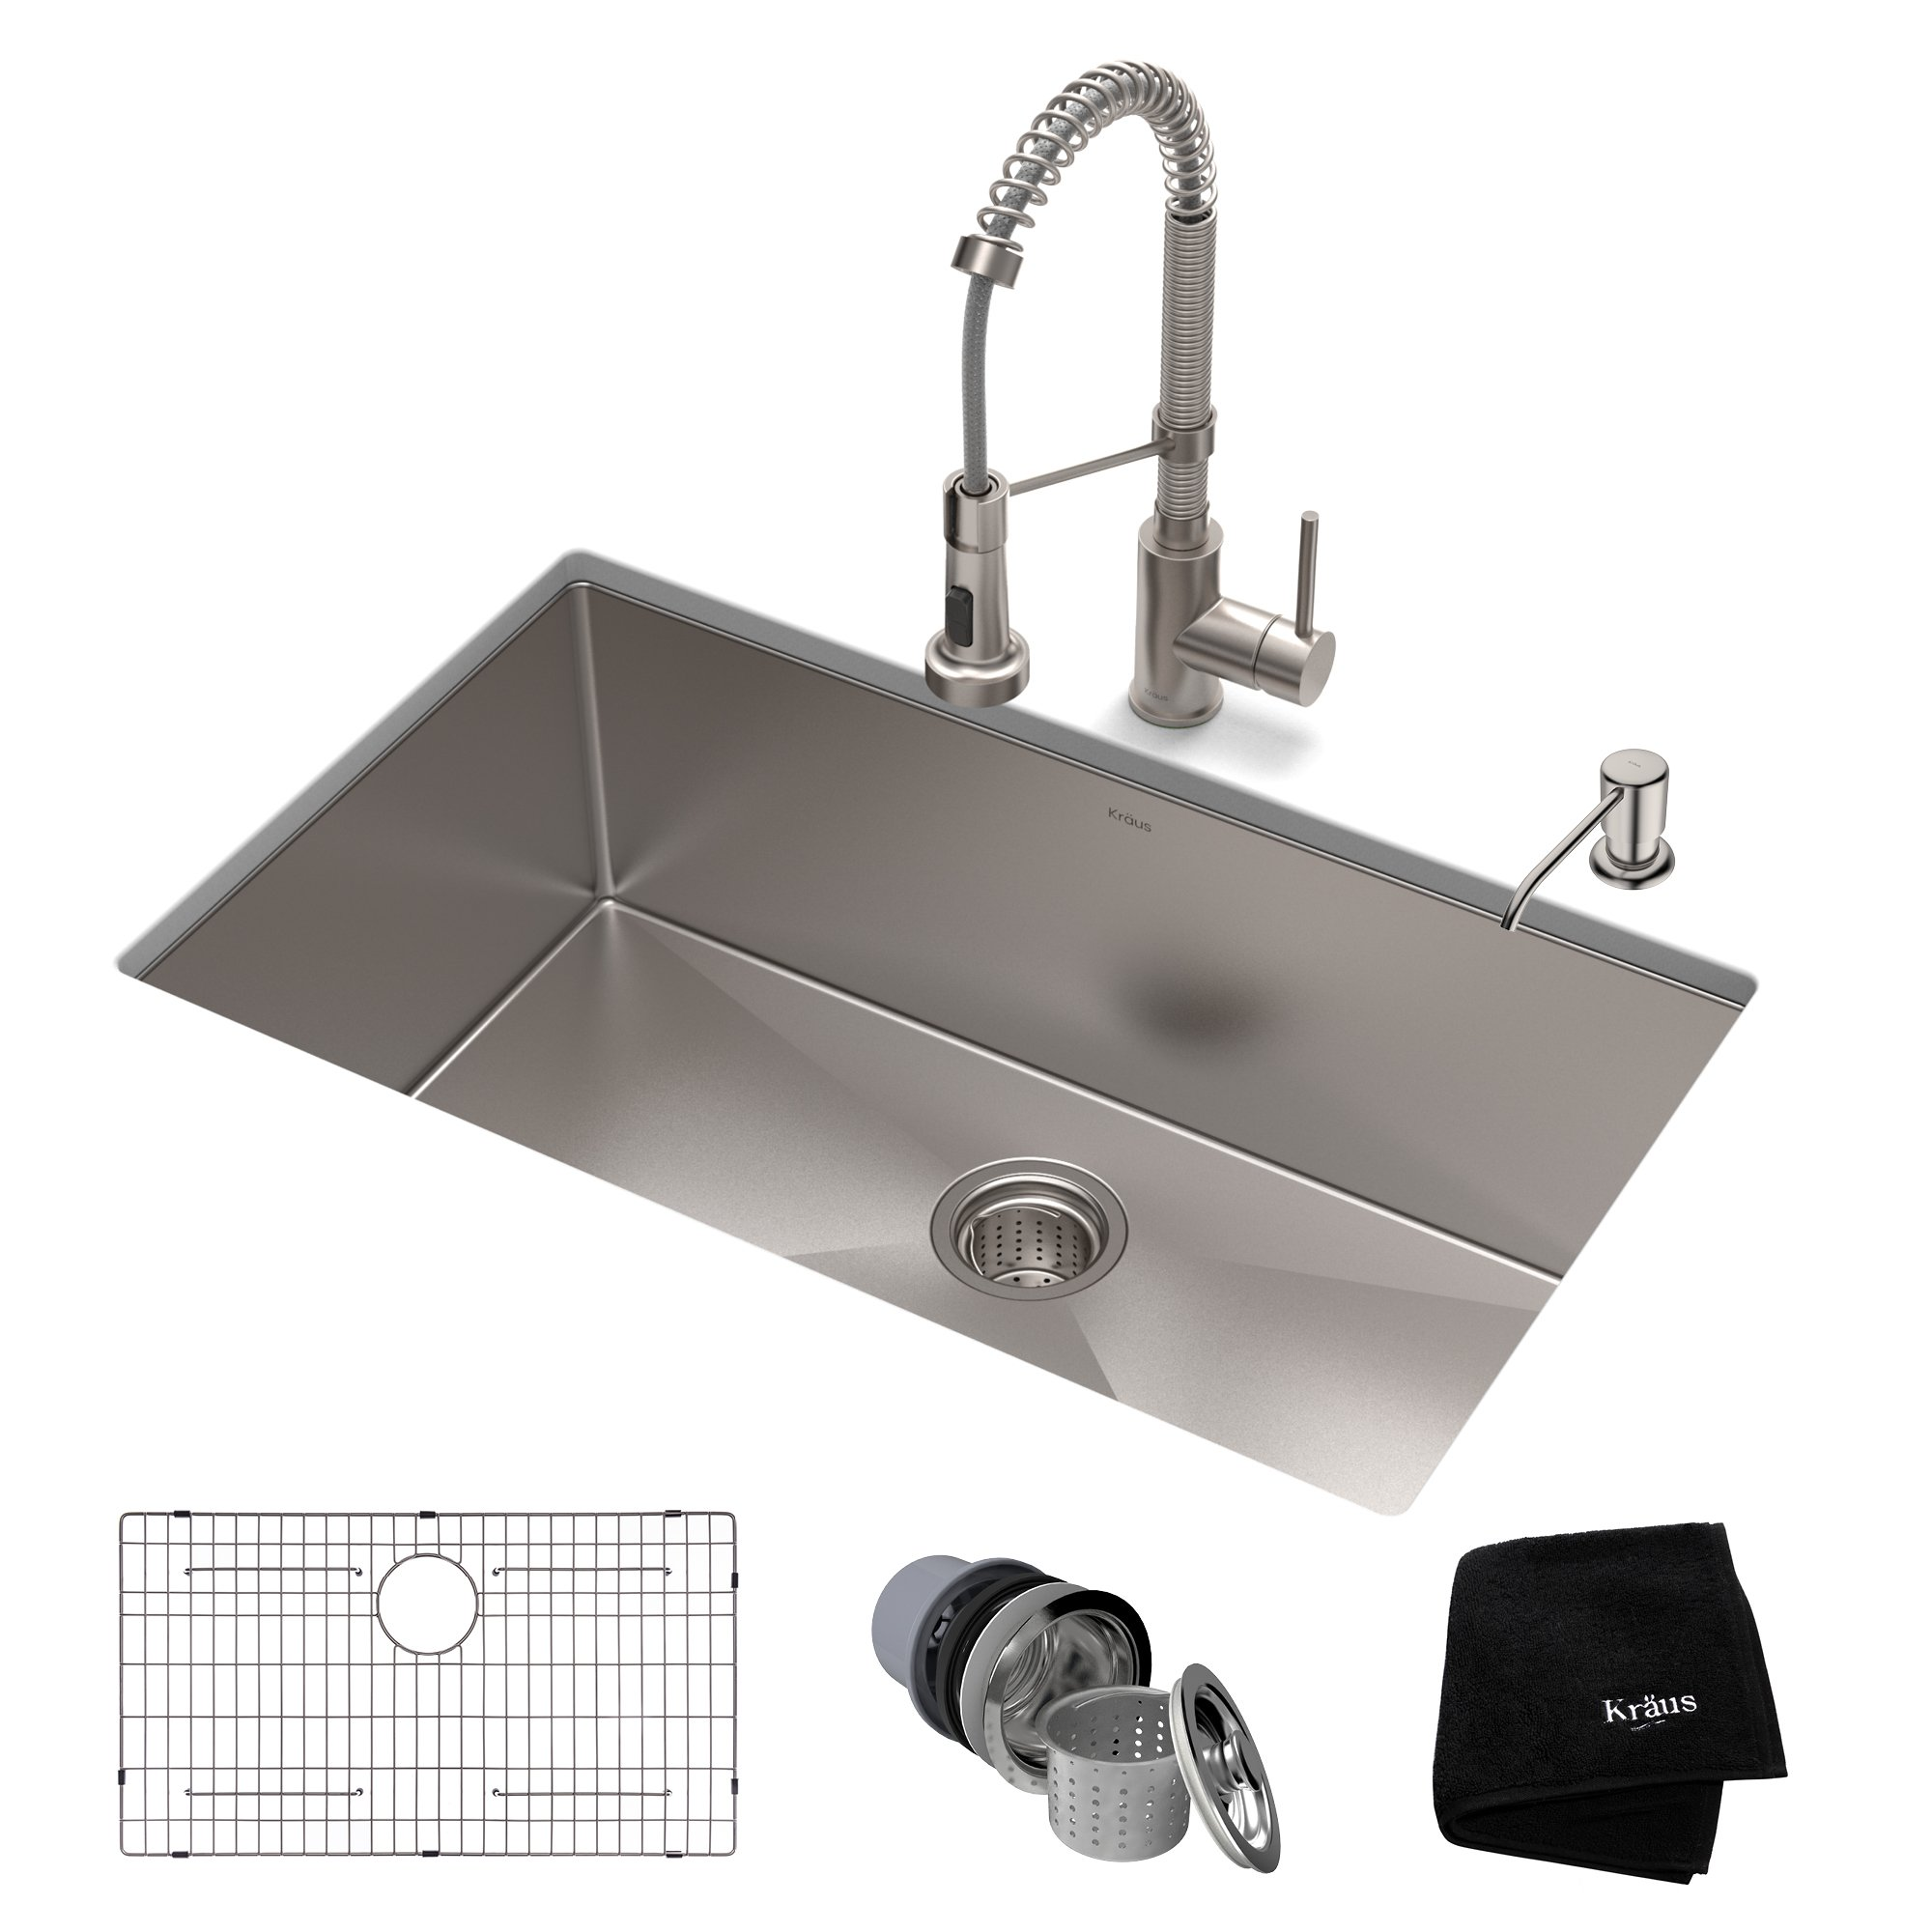 KRAUS KHU100-30-1610-53SS Set with Standart PRO Sink and Bolden Commercial Pull Faucet in Stainless Steel Kitchen Sink & Faucet Combo, 30 inch,